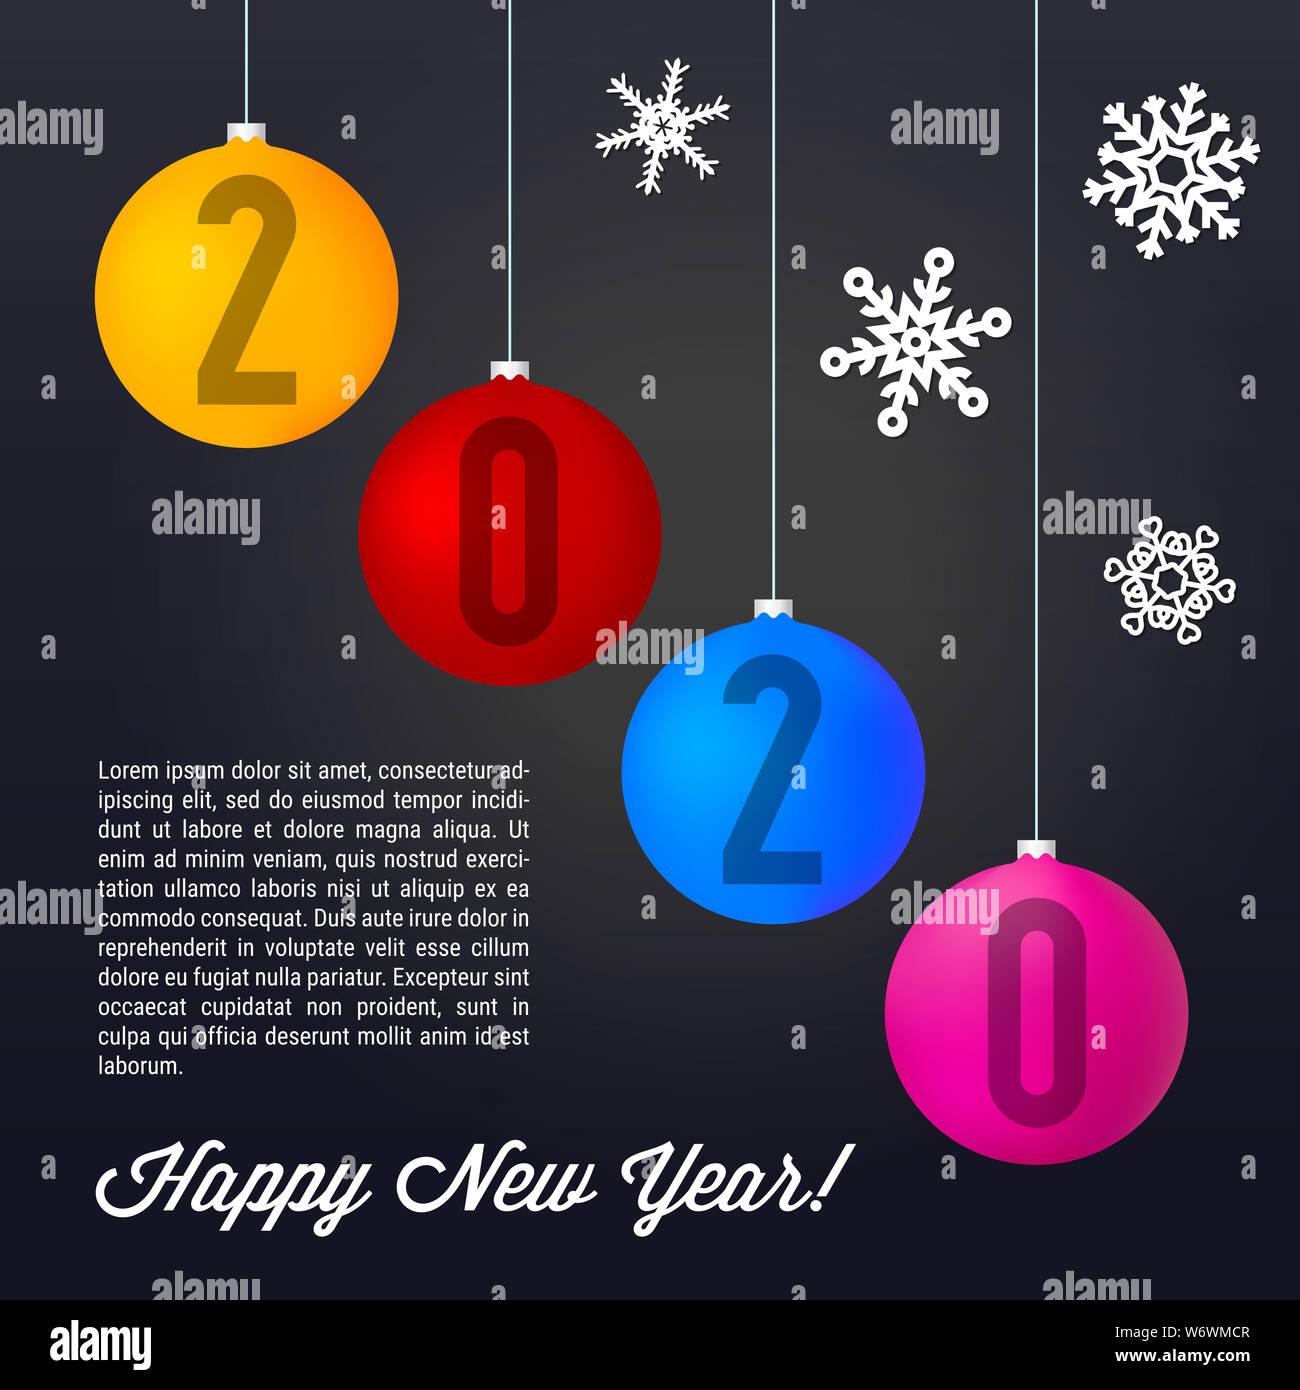 Merry Christmas Images And Happy 2020 Cards Colored Matt Christmas Balls on Black Background. Merry Christmas